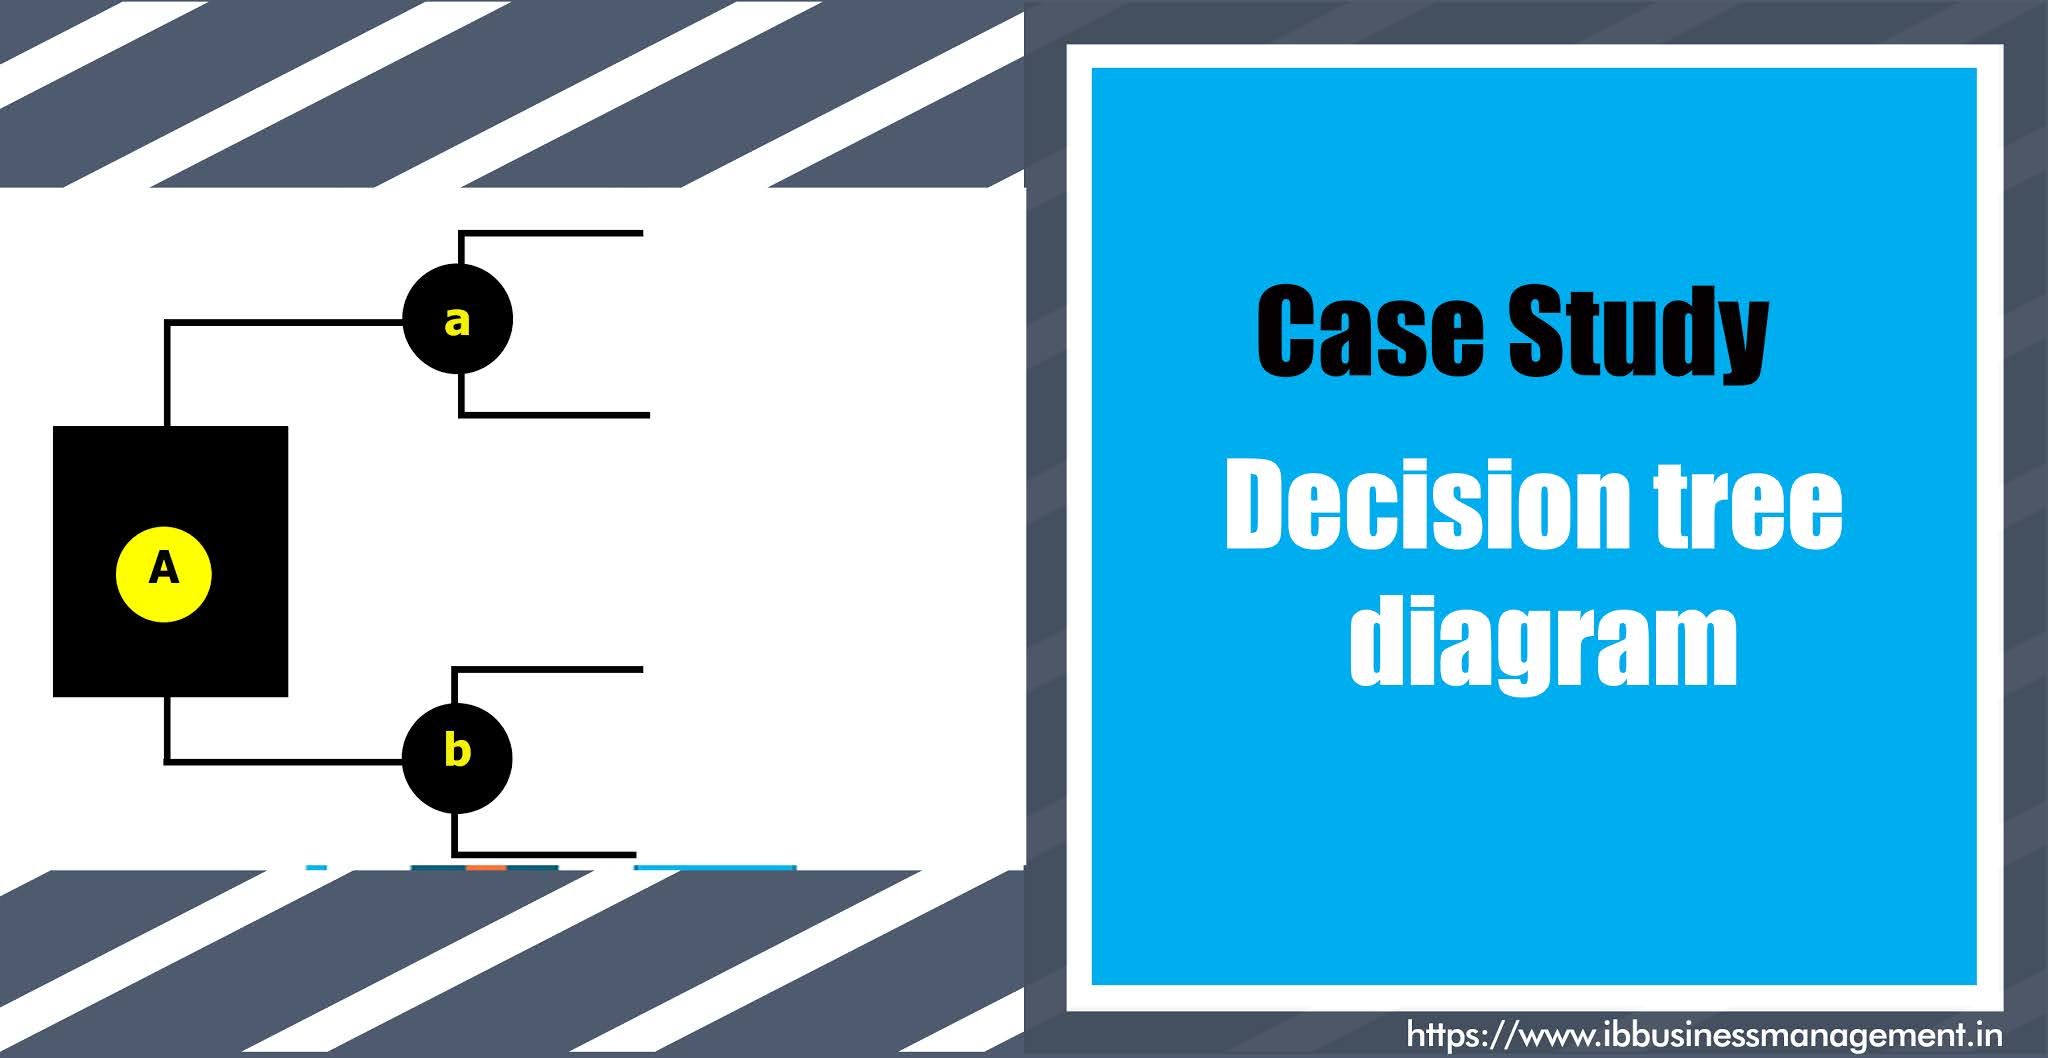 Decision tree diagram case study